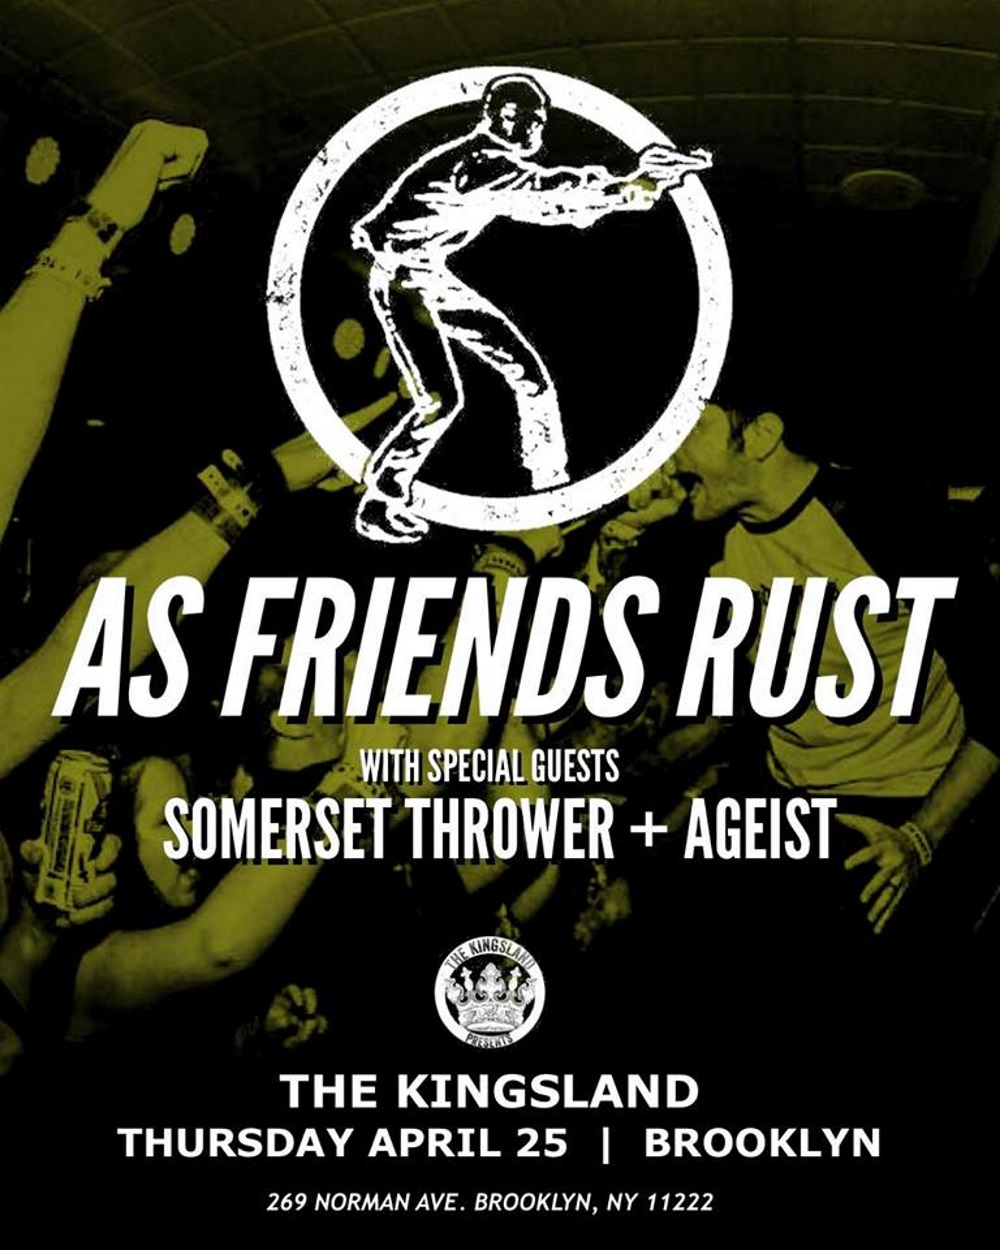 AS FRIENDS RUST show